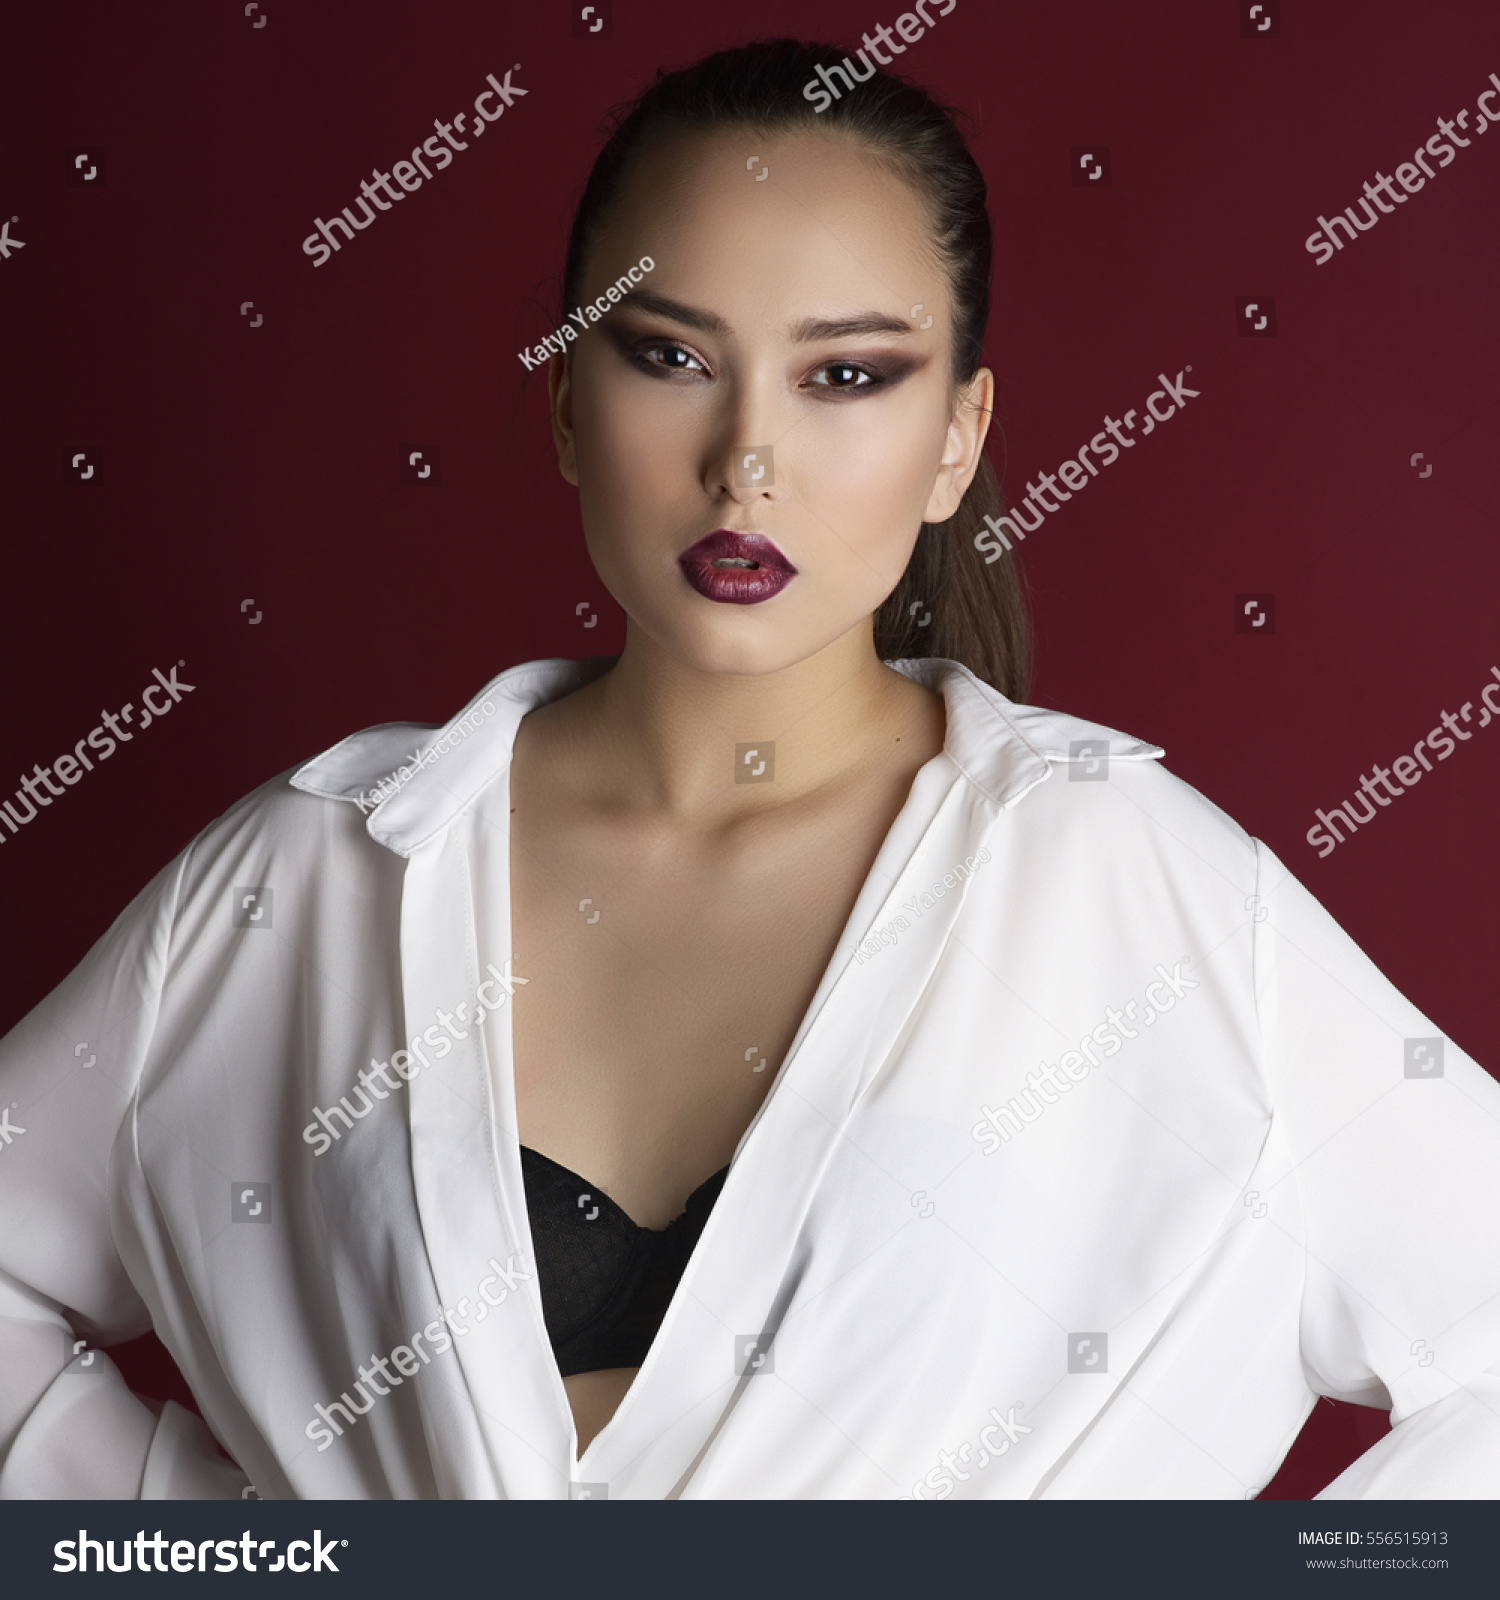 Asian Girl In White Shirt And Black Bra Makeup Smokey Eyes Red Lips